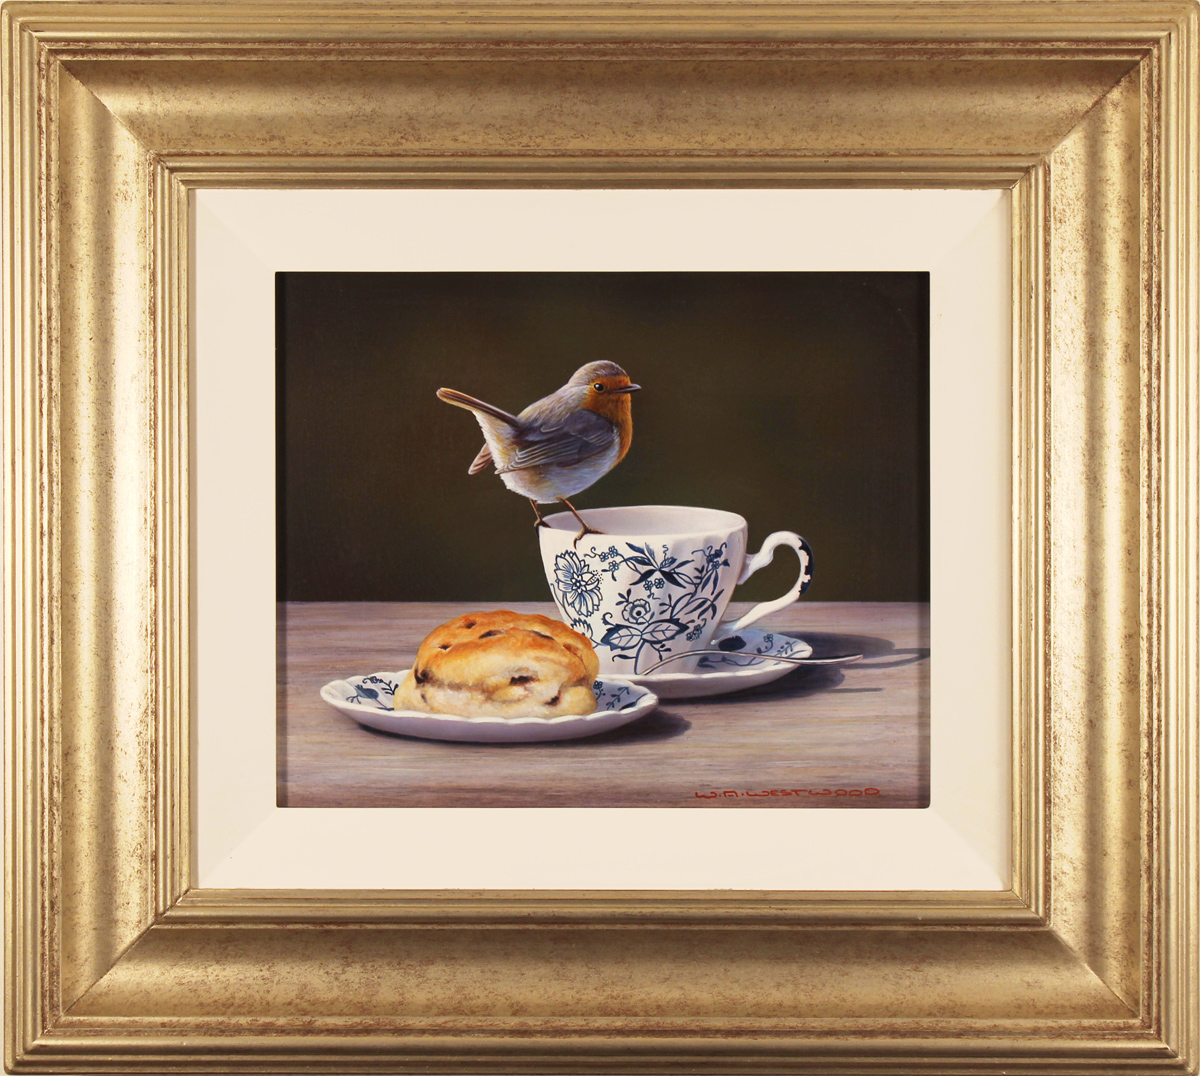 Wayne Westwood, Original oil painting on panel, Robin on a Teacup. Click to enlarge